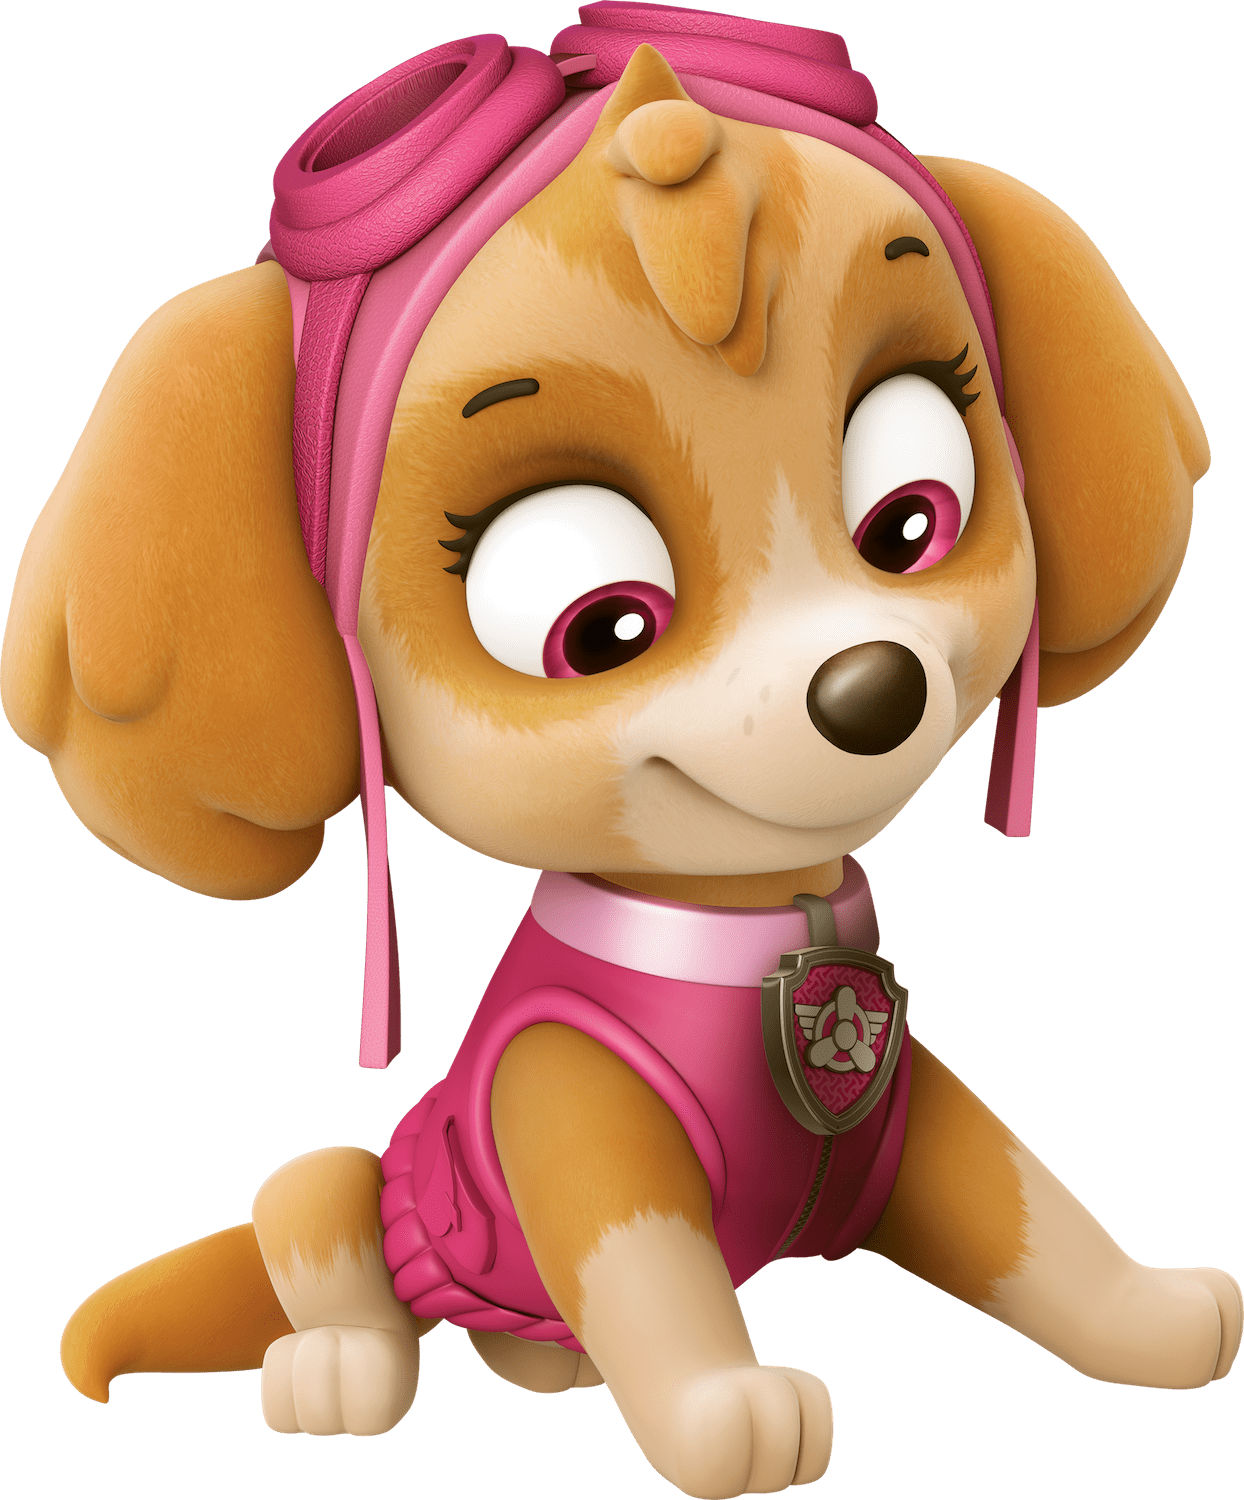 Skye paw patrol clipart 5 » Clipart Station.